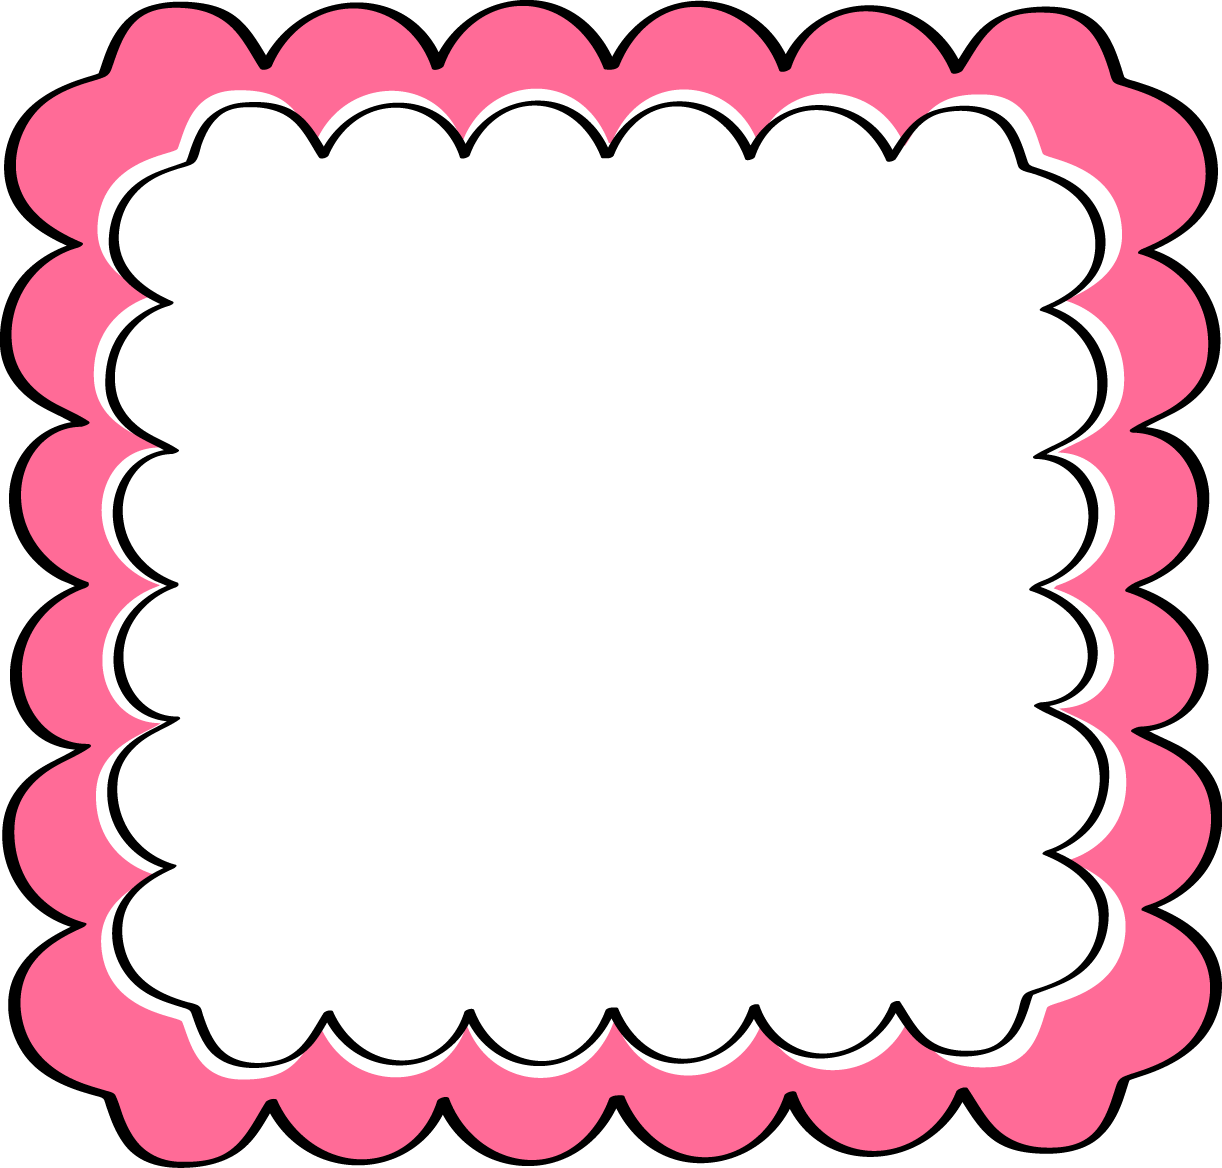 pink scalloped frame